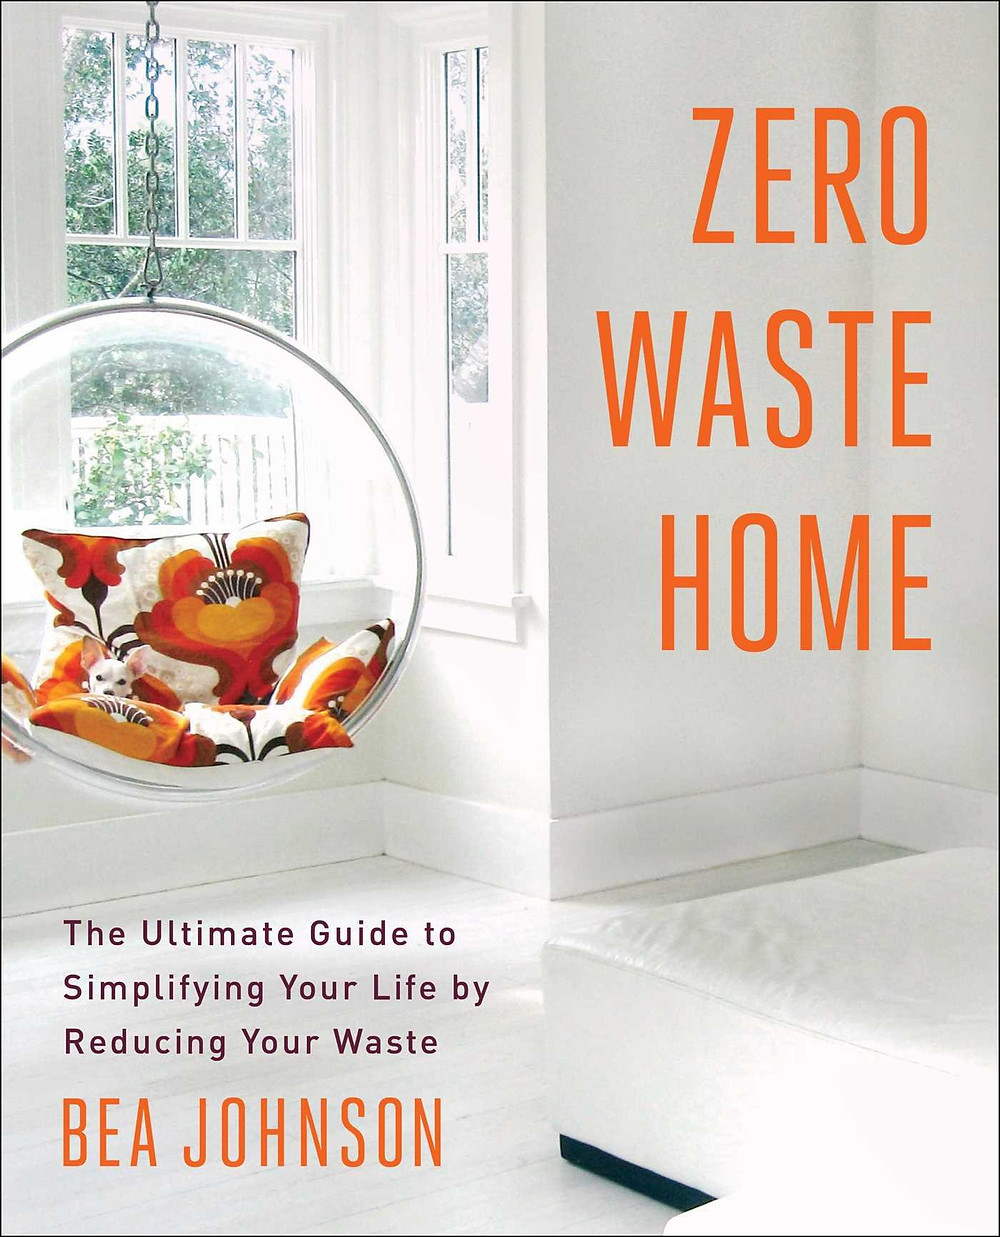 Zero waste interiors | sustainable interior book list | eco friendly home inspiration | plastic free living | Design w Care